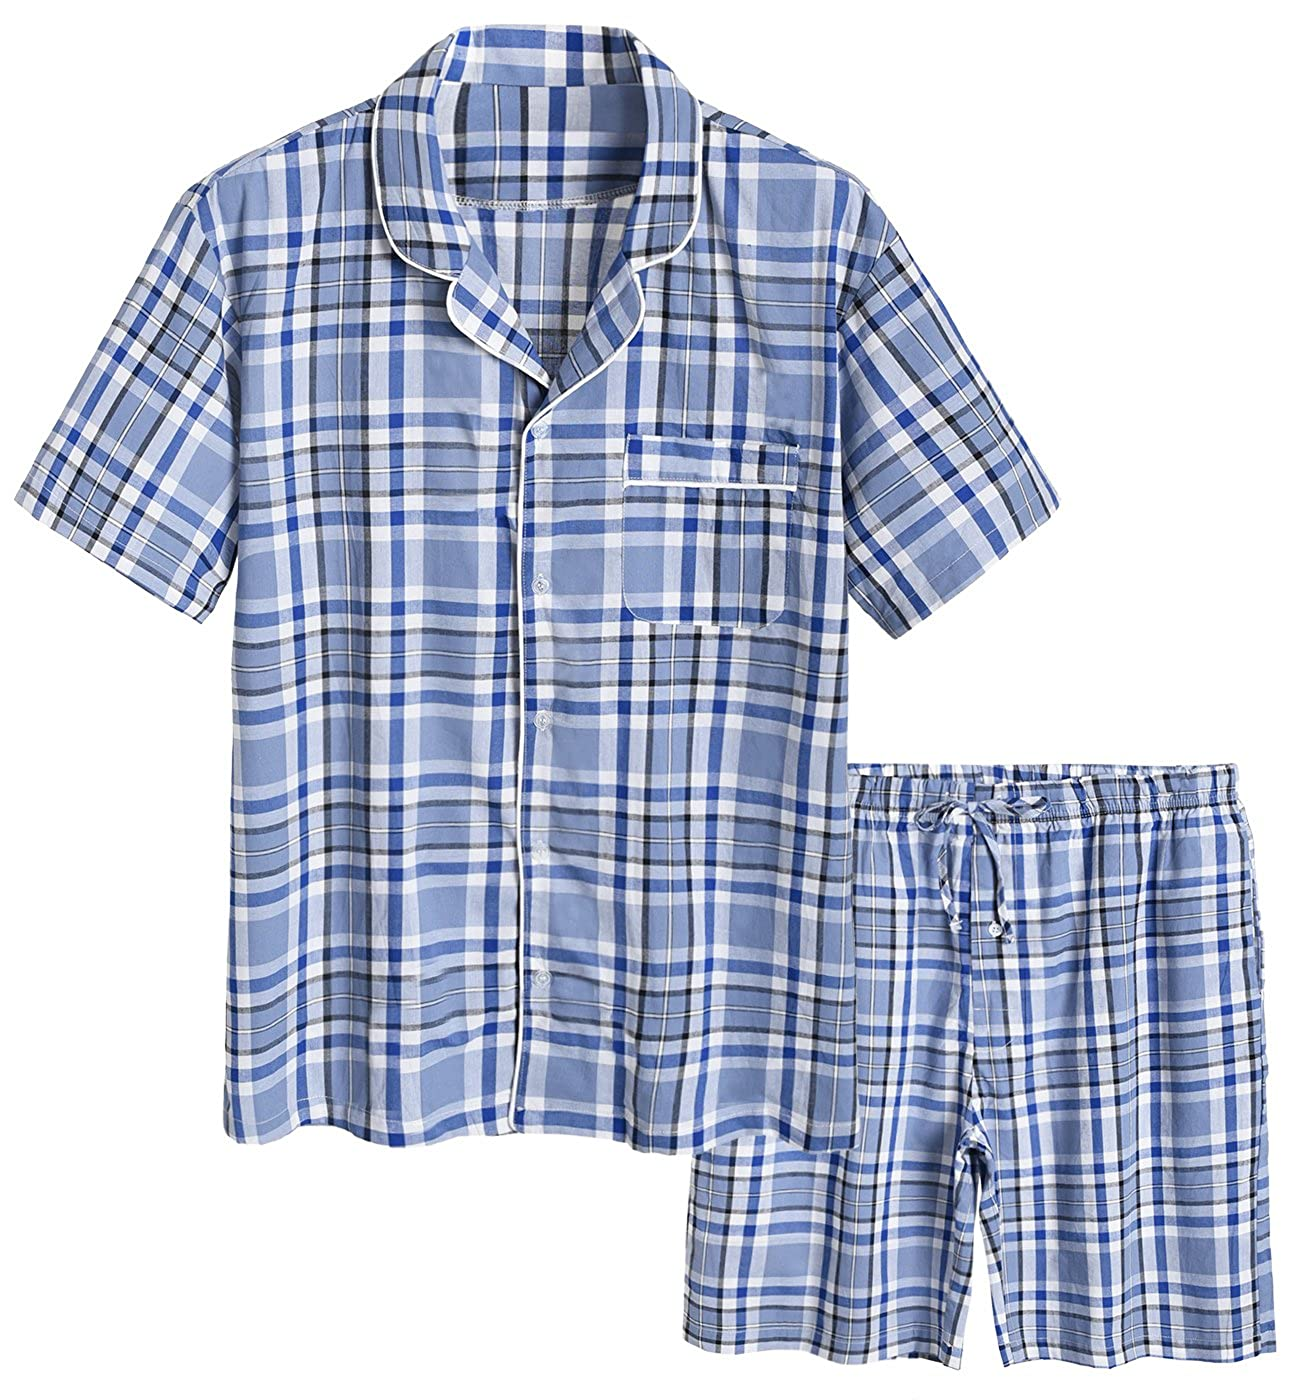 Latuza Mens Cotton Woven Short Sleepwear Pajama Set